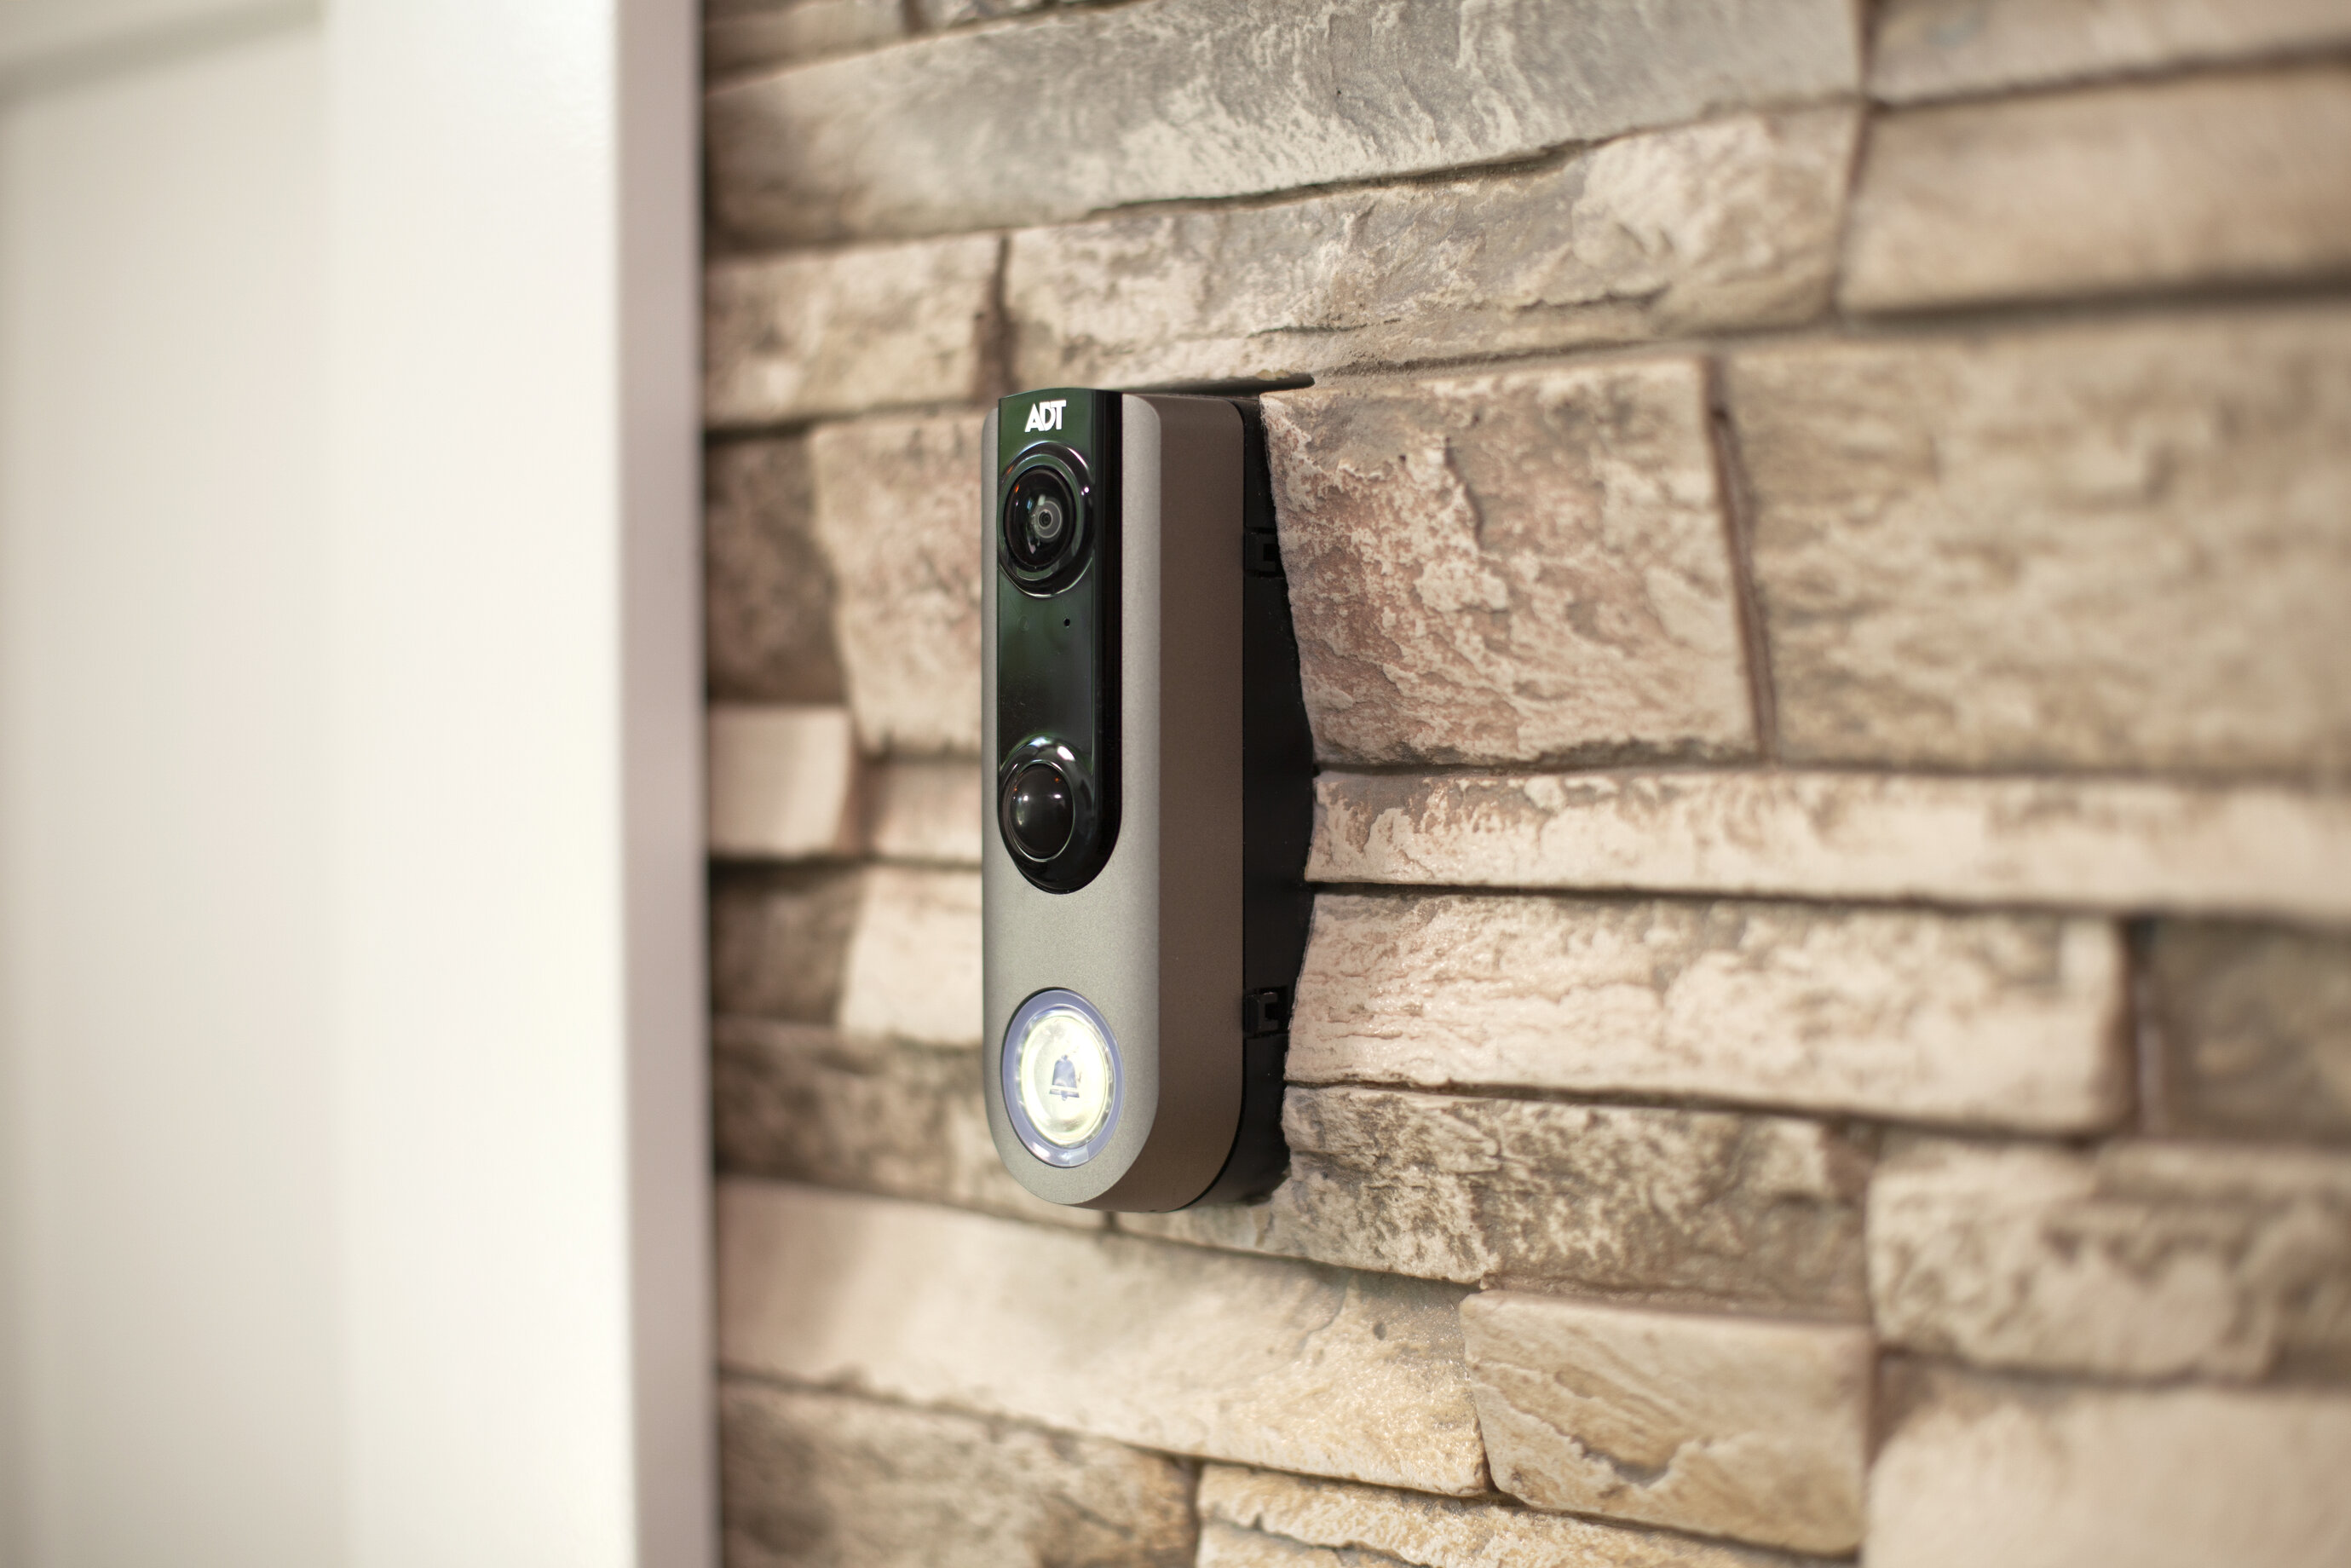 An ADT doorbell to the right of a white door on the exterior of a home with stone details.